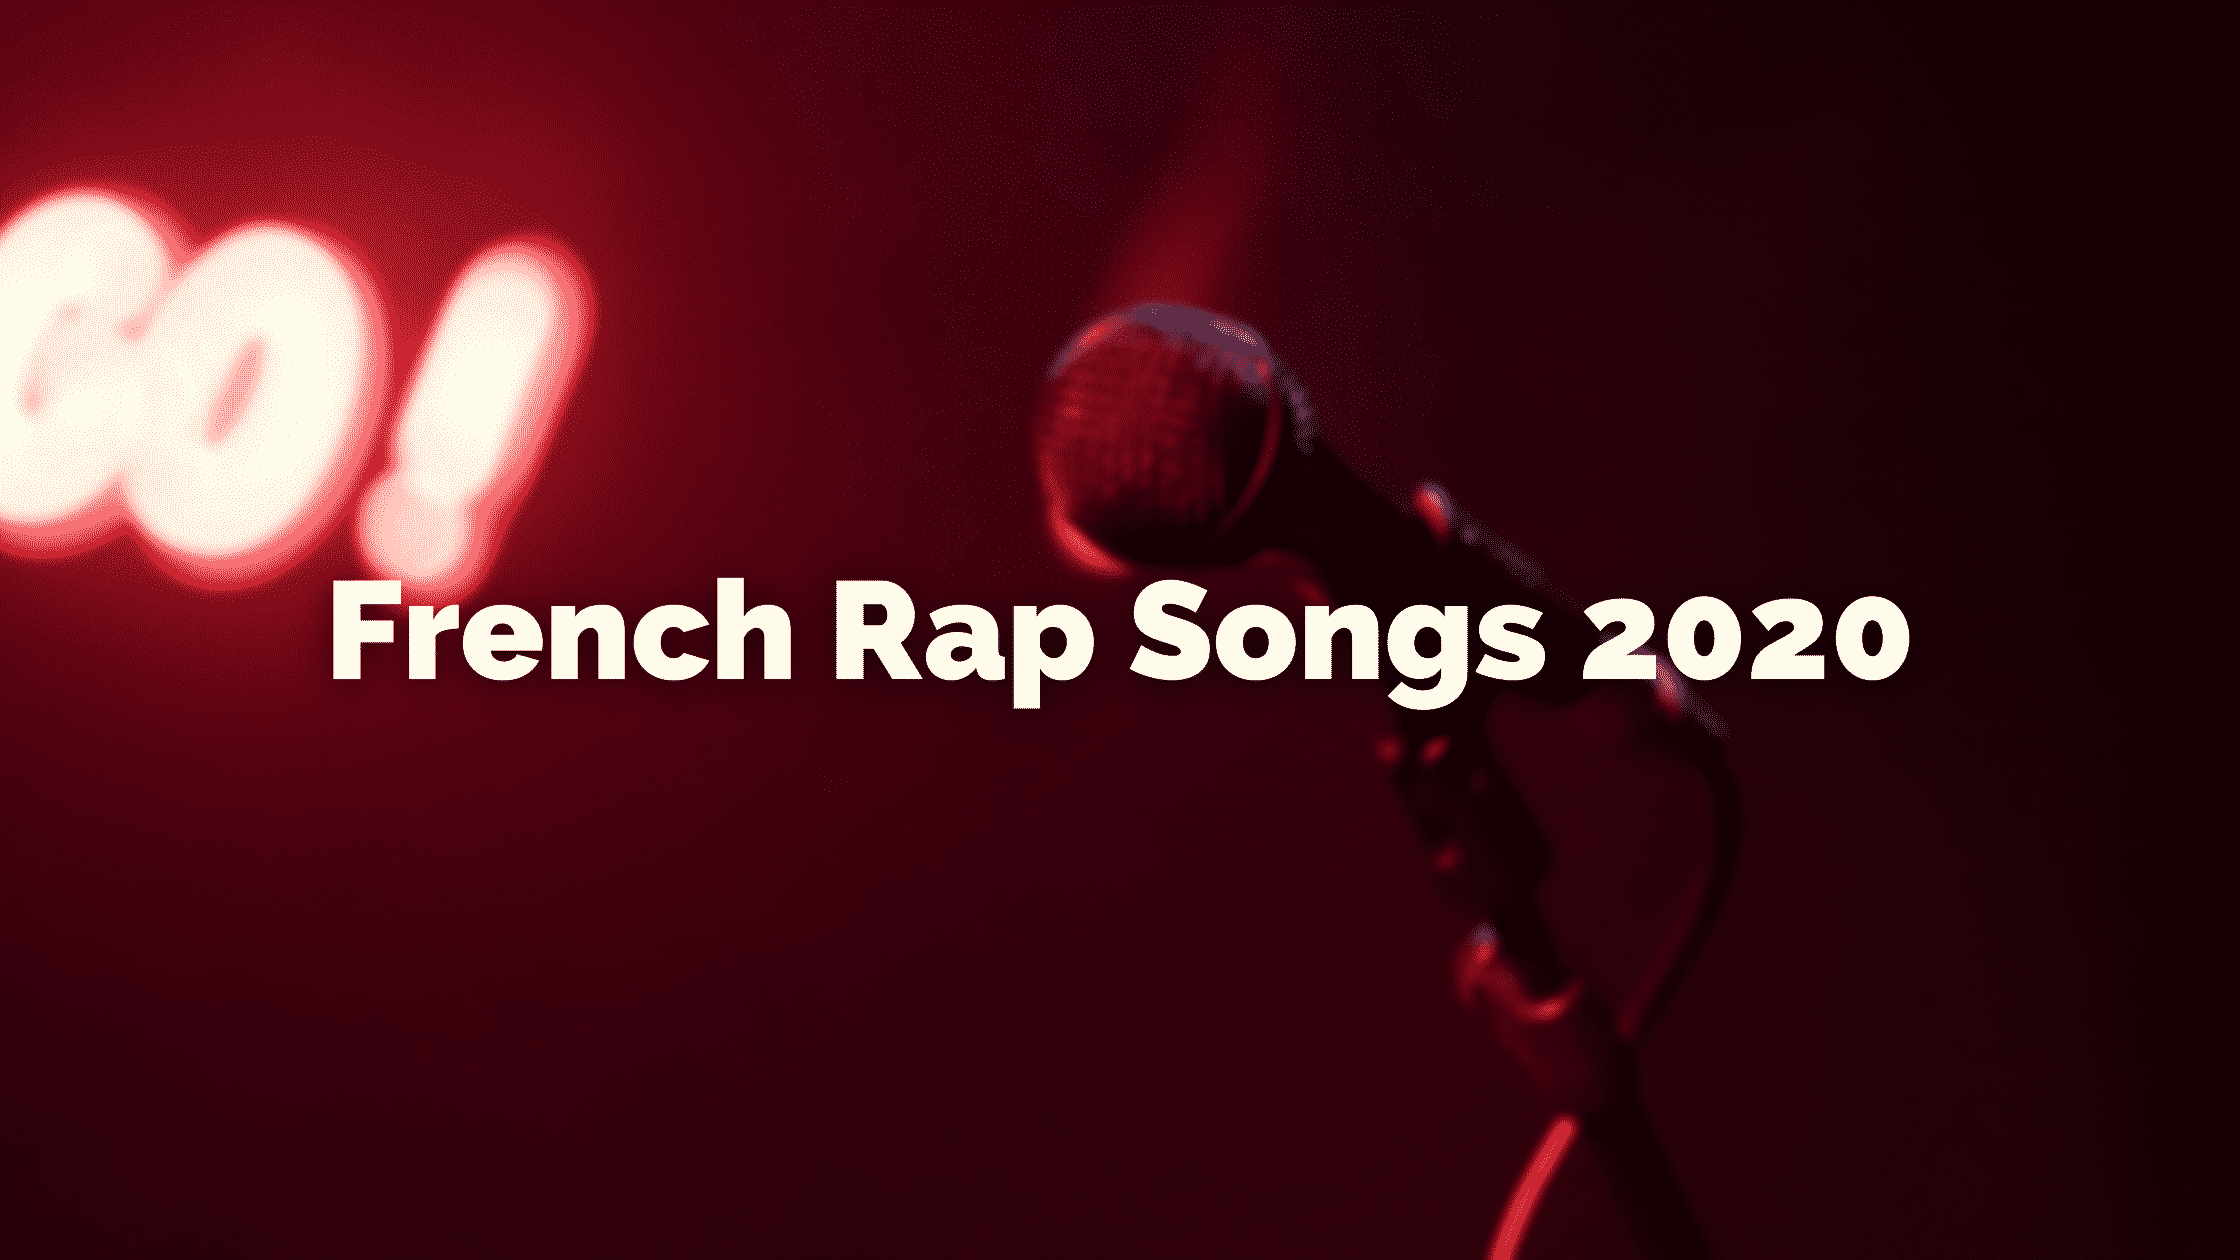 French rap song from 2020